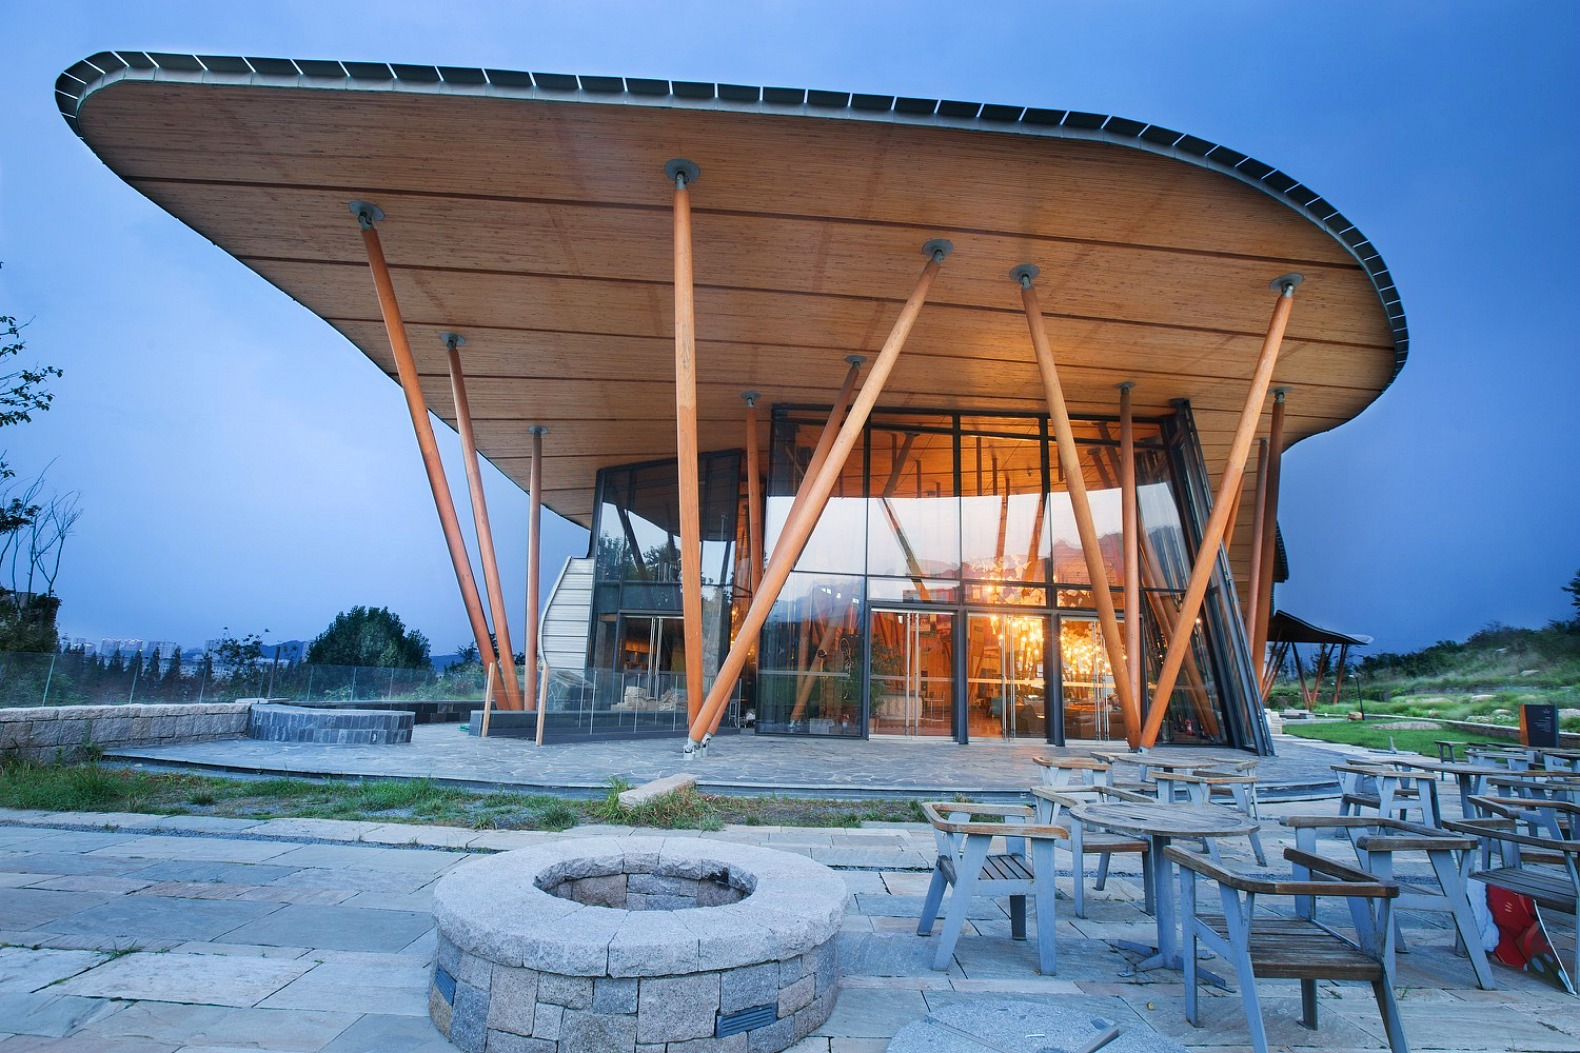 Vance Tsing Tao Pearl Hill Visitor Center Blends Into The